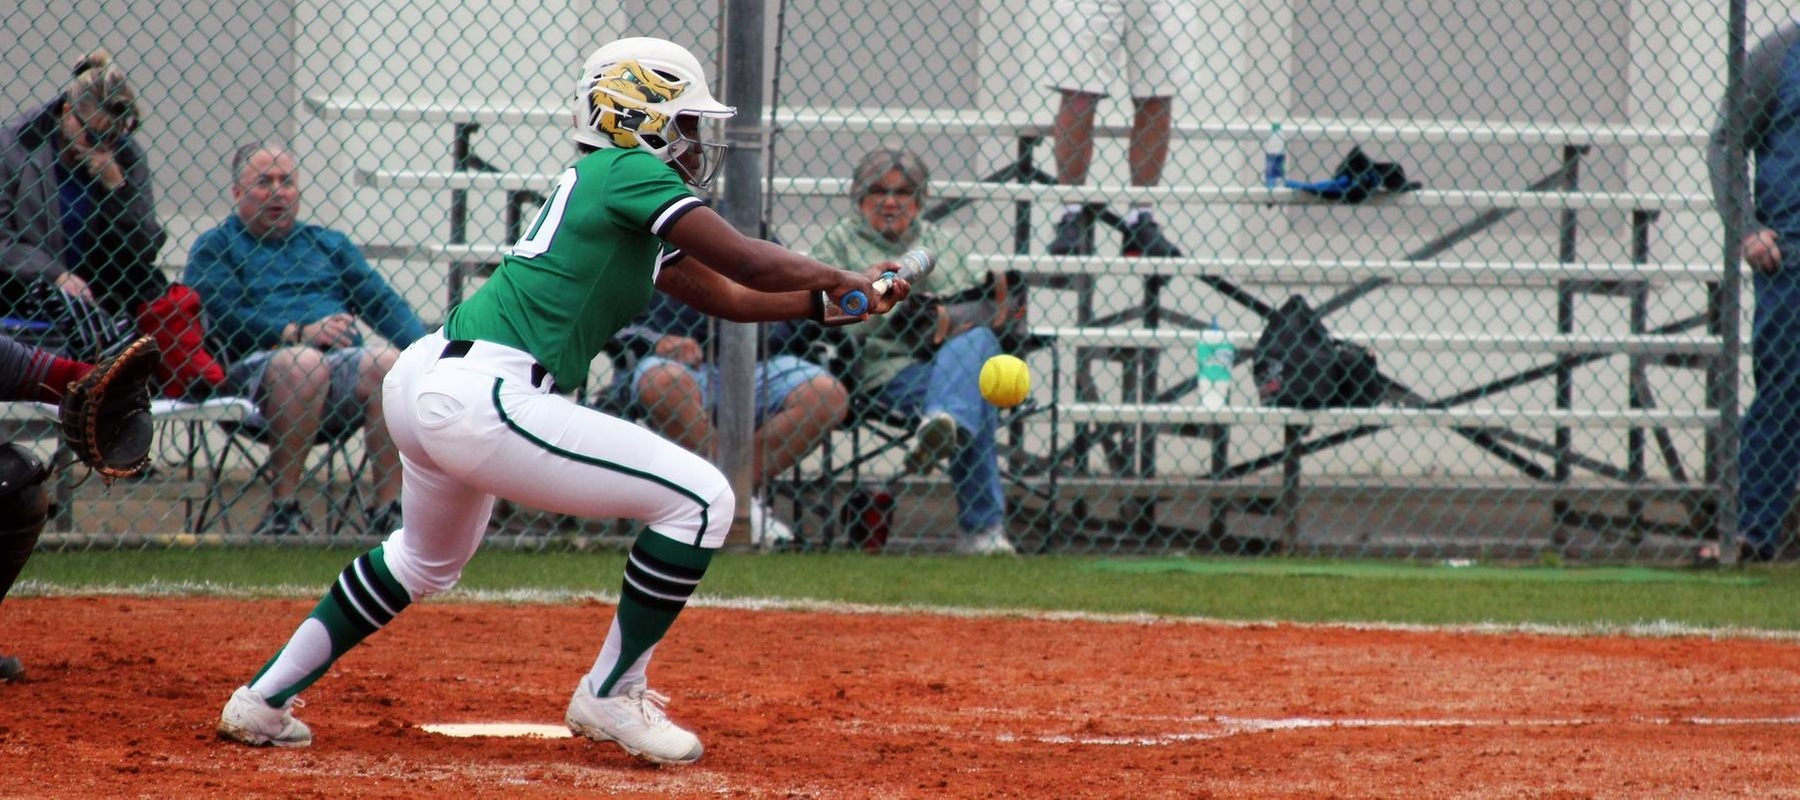 Copyright 2019; Wilmington University. All rights reserved. Photo of Rosa'Lynn Burton who had three hits in game one at Florida Tech. Photo by Mary Kate Rumbaugh March 5, 2019 at No. 9 Florida Tech.